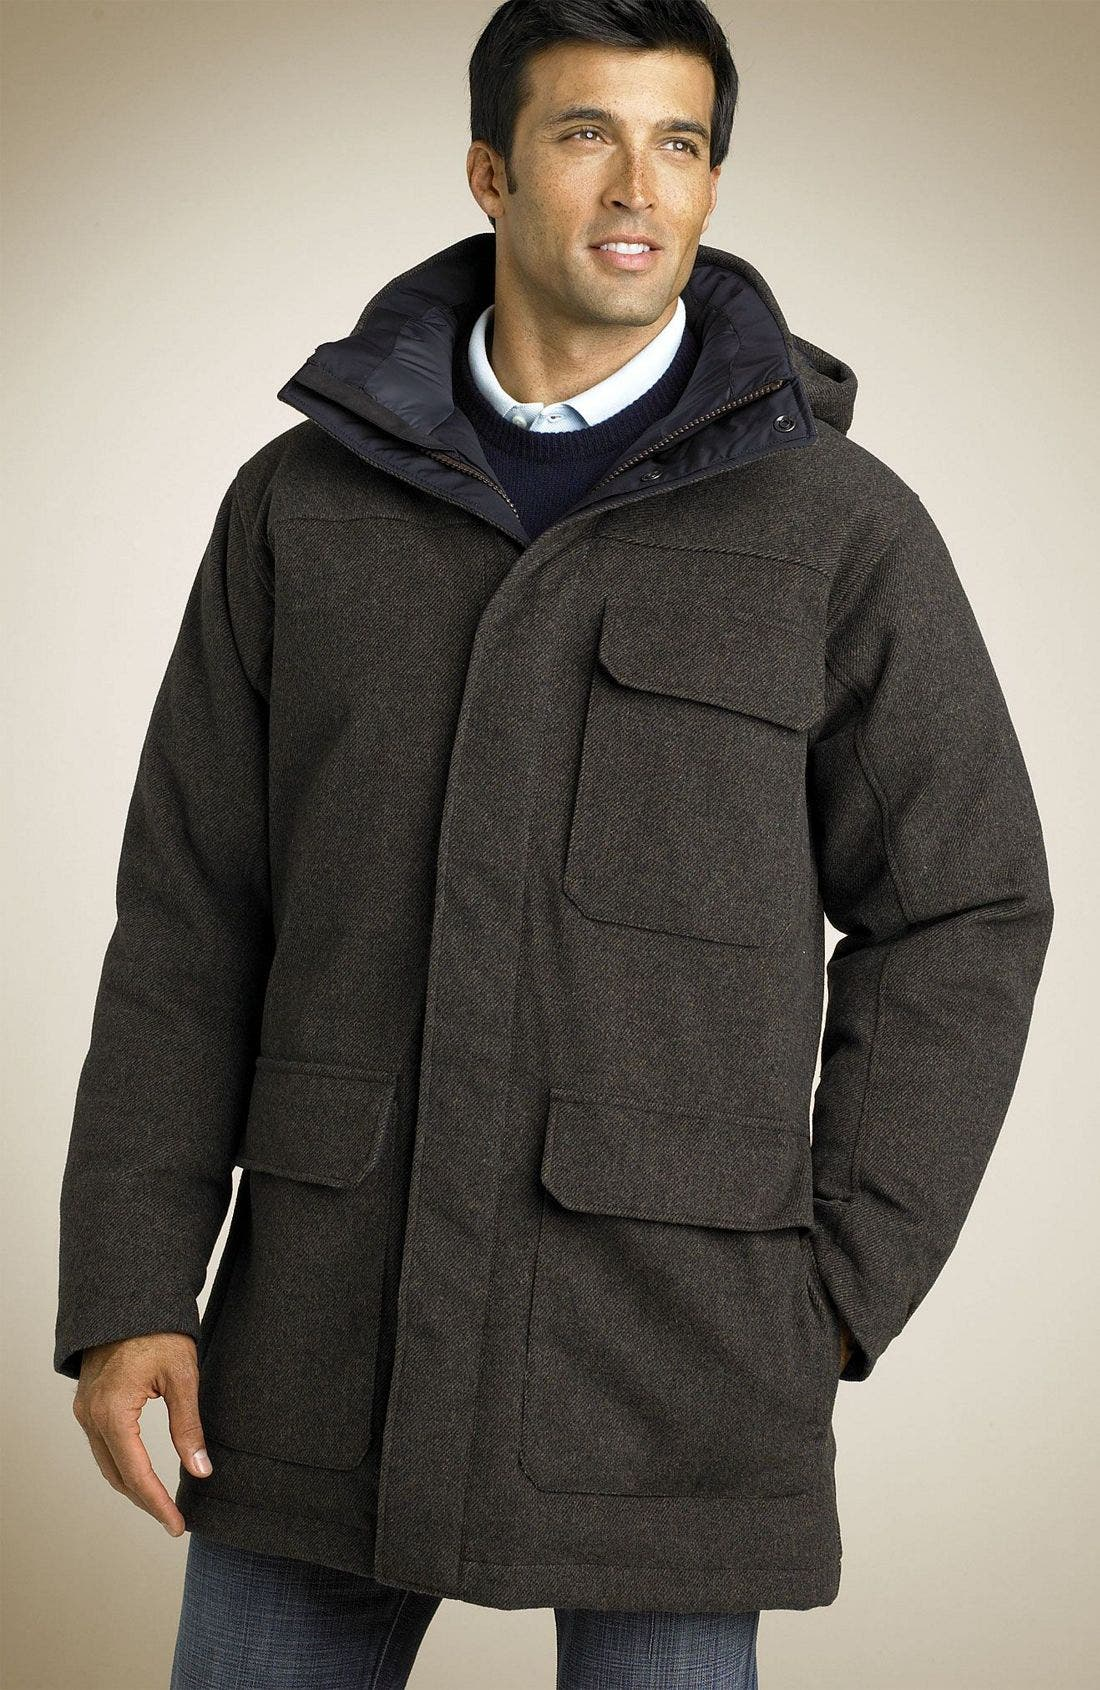 Alternate Image 1 Selected - The North Face 485 Collection 'Tellurium' Tweed Jacket